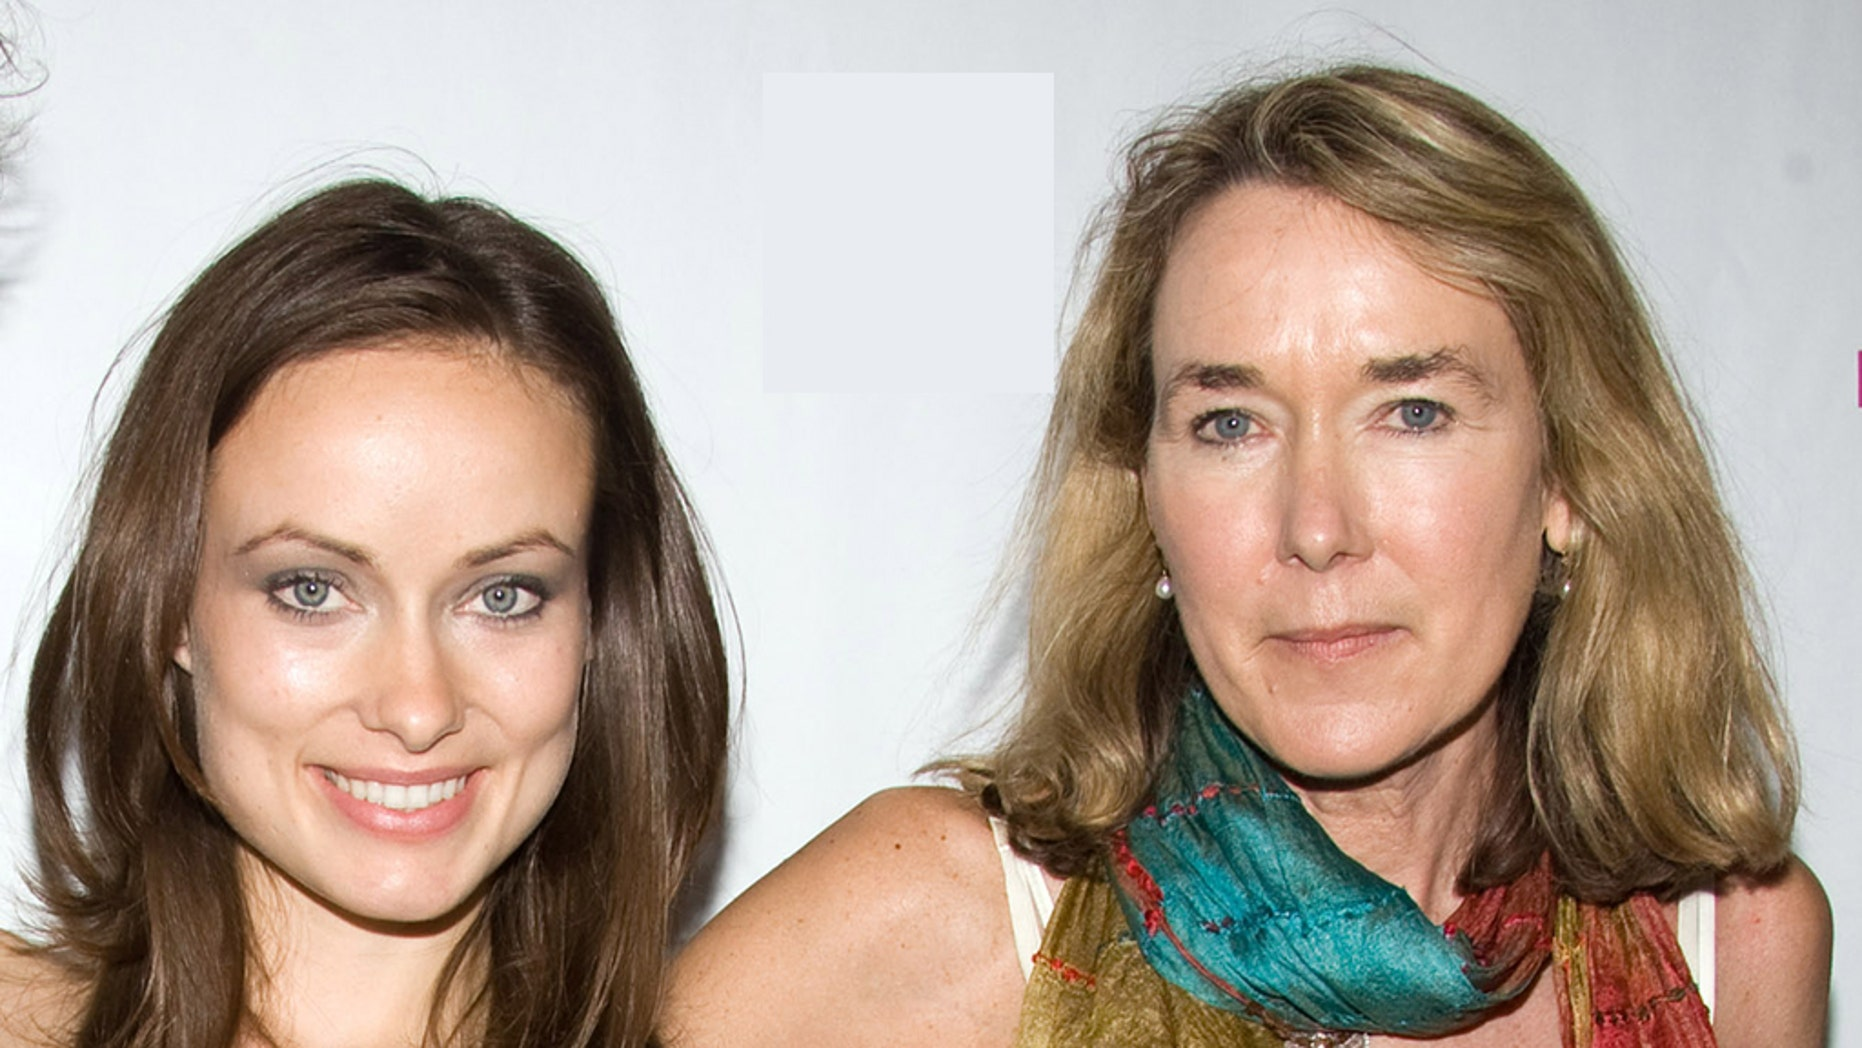 Actress Olivia Wilde and her mother, Leslie Cockburn, in New York. Virginia Republicans are going after Cockburn in her Virginia House race.